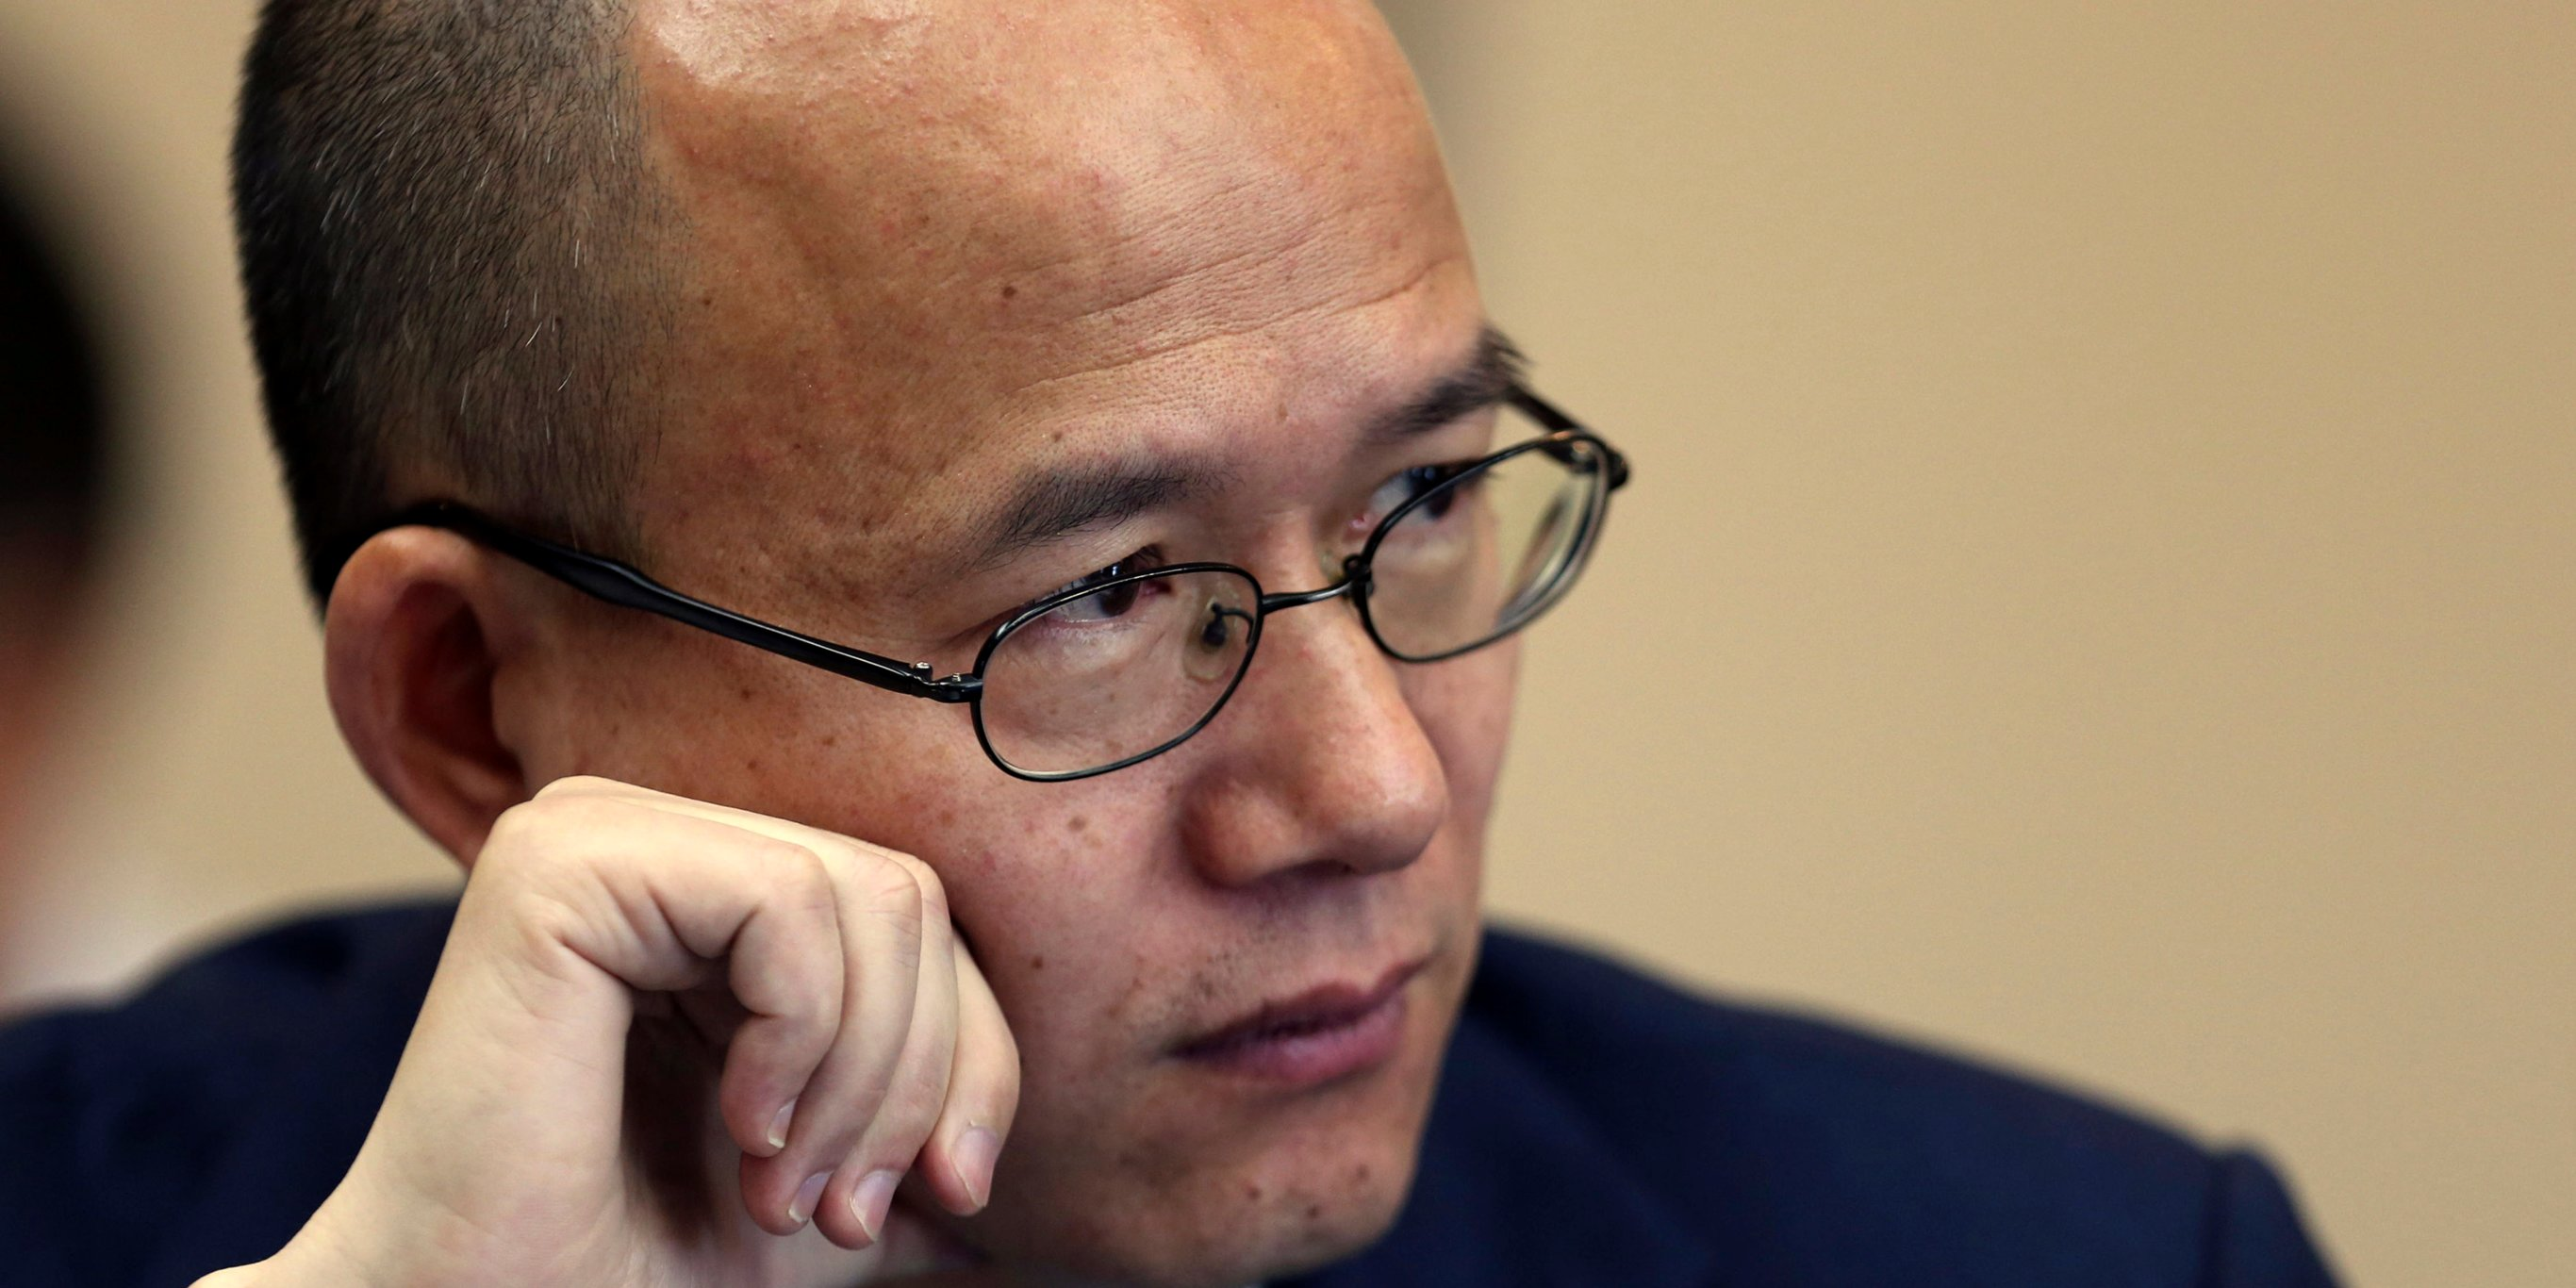 The 'Warren Buffett of China' could lose $1.5 billion in Thomas Cook's bankruptcy